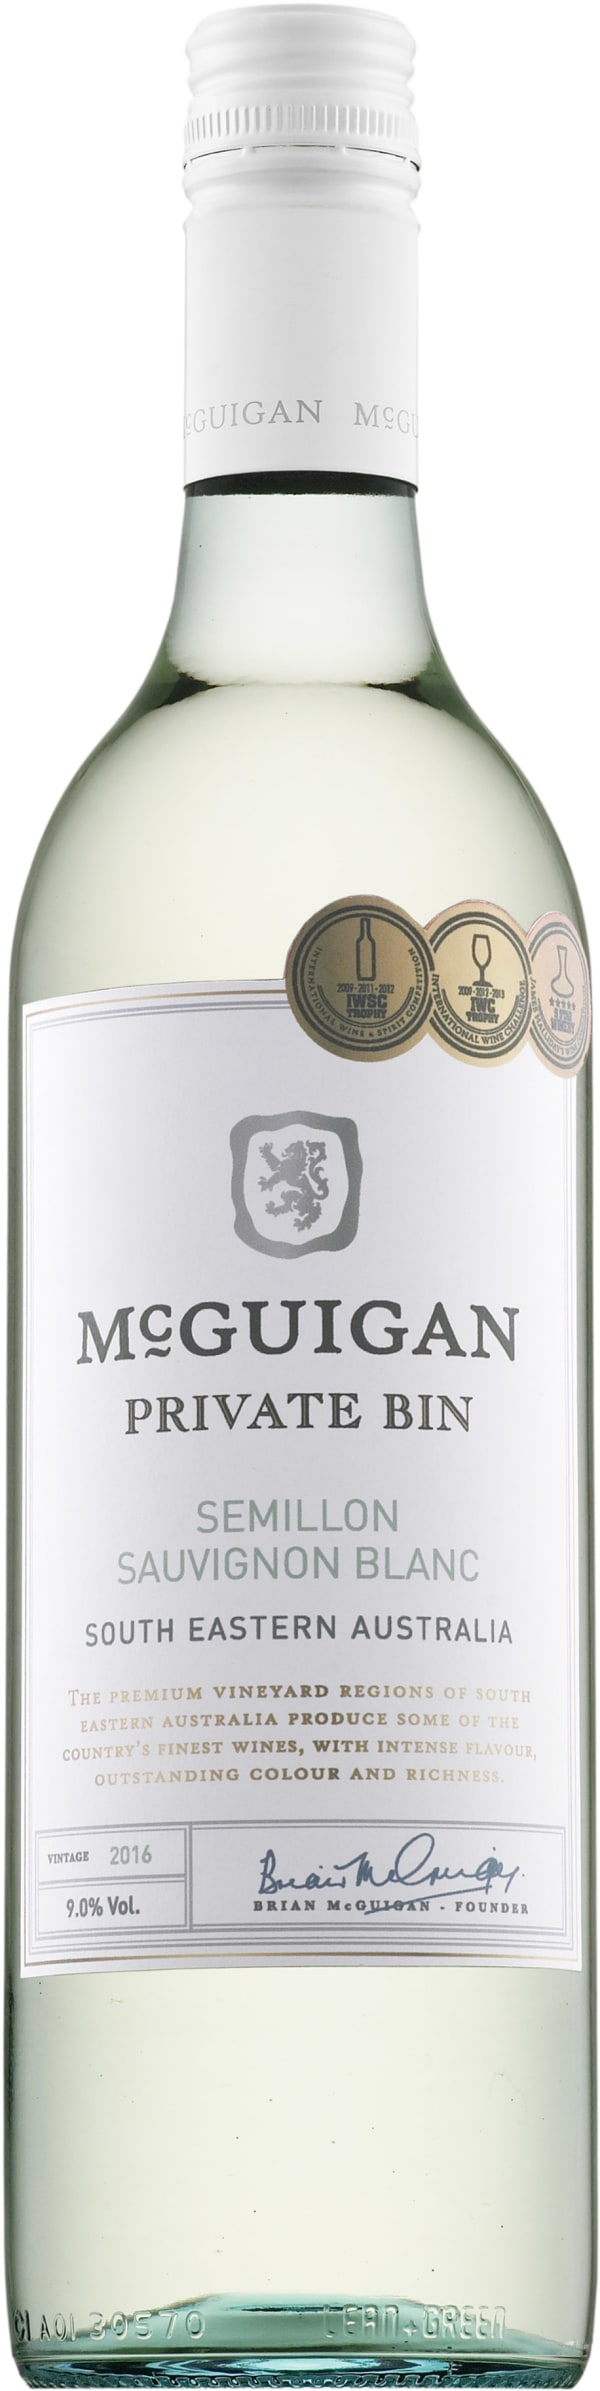 McGuigan Private Bin Sémillon Sauvignon Blanc 2016